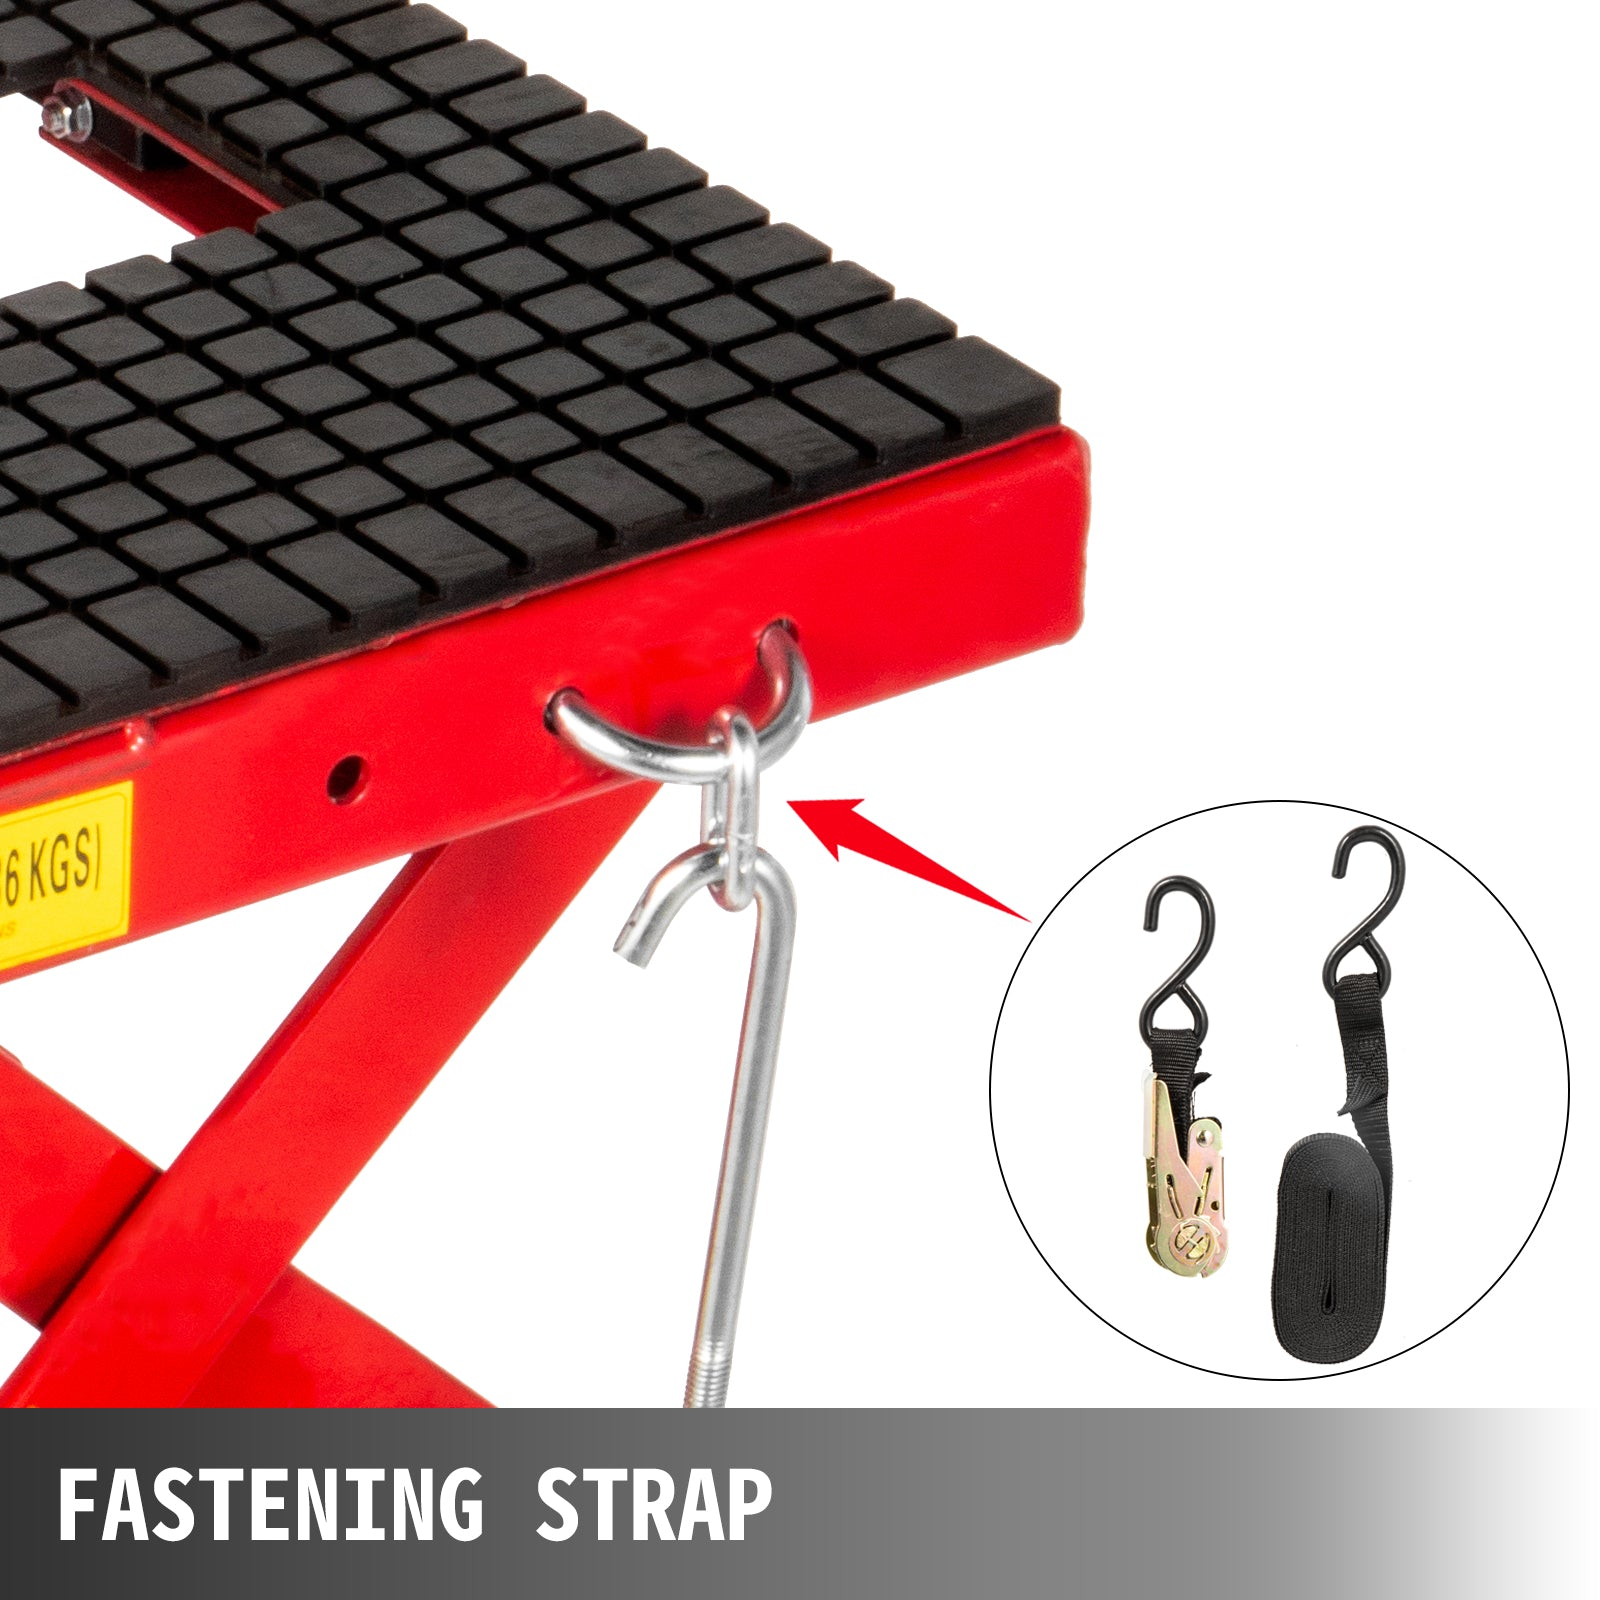 Motorcycle Jack, Scissor Jack 300lbs, Hydraulic Lift Table With Fastening Straps